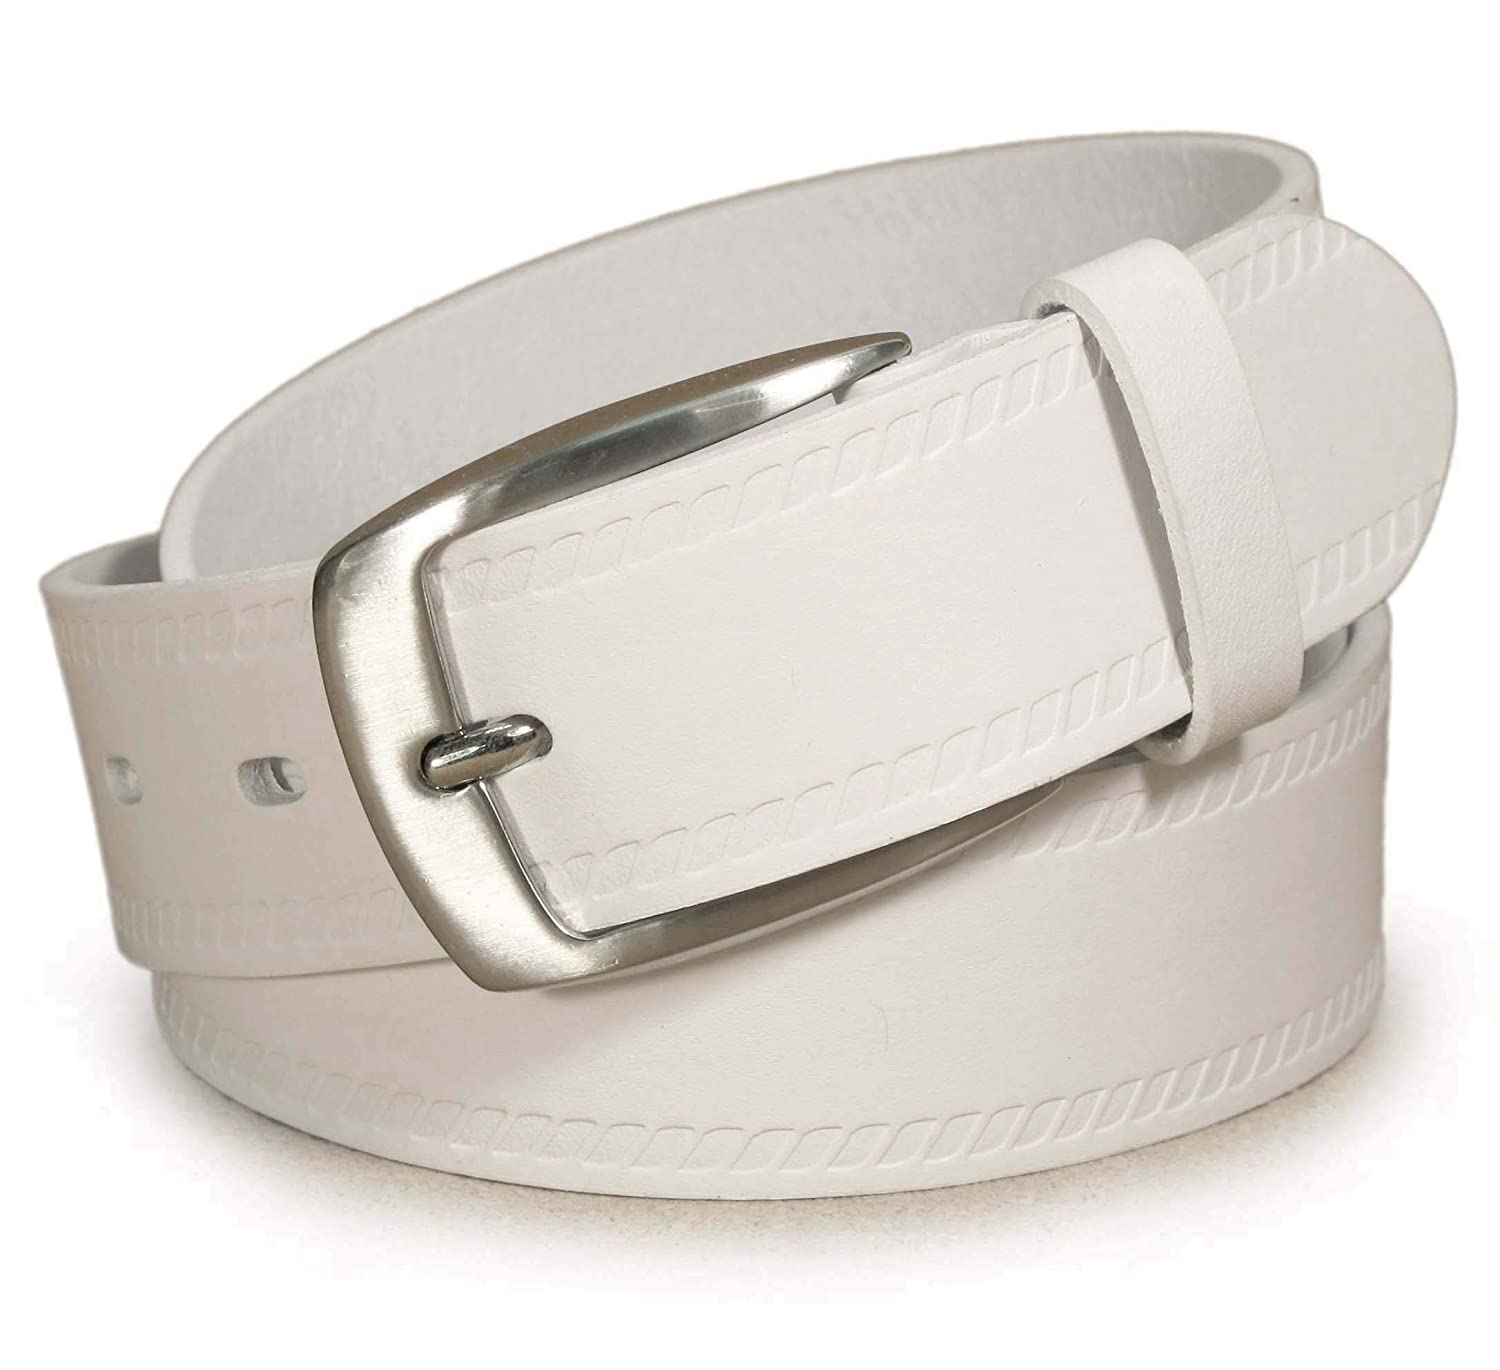 UM4 Mens Real Genuine Leather White Belt 1.25 Wide S-XL Thick Long Casual Jeans